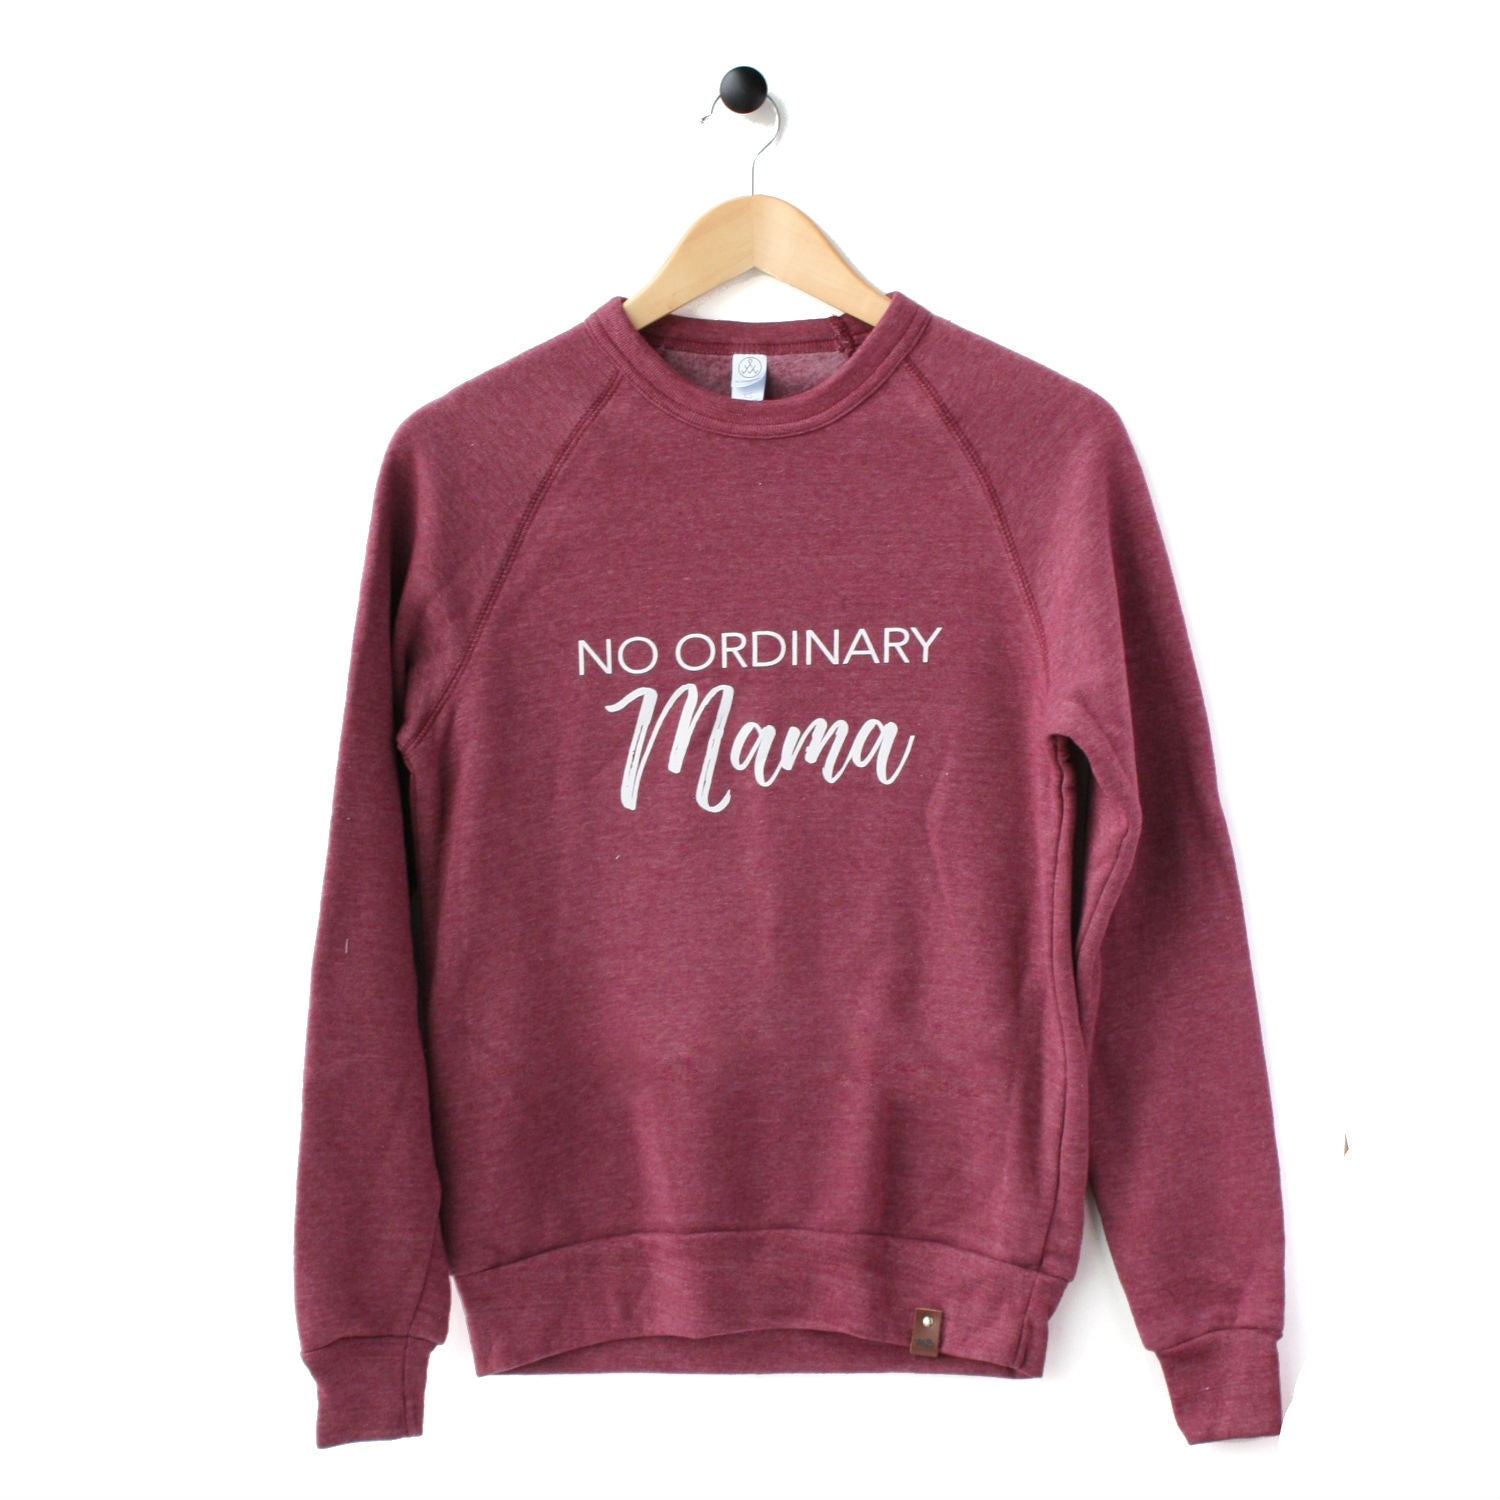 Charlie Crew Sweater - No Ordinary Mama - Multi Colours